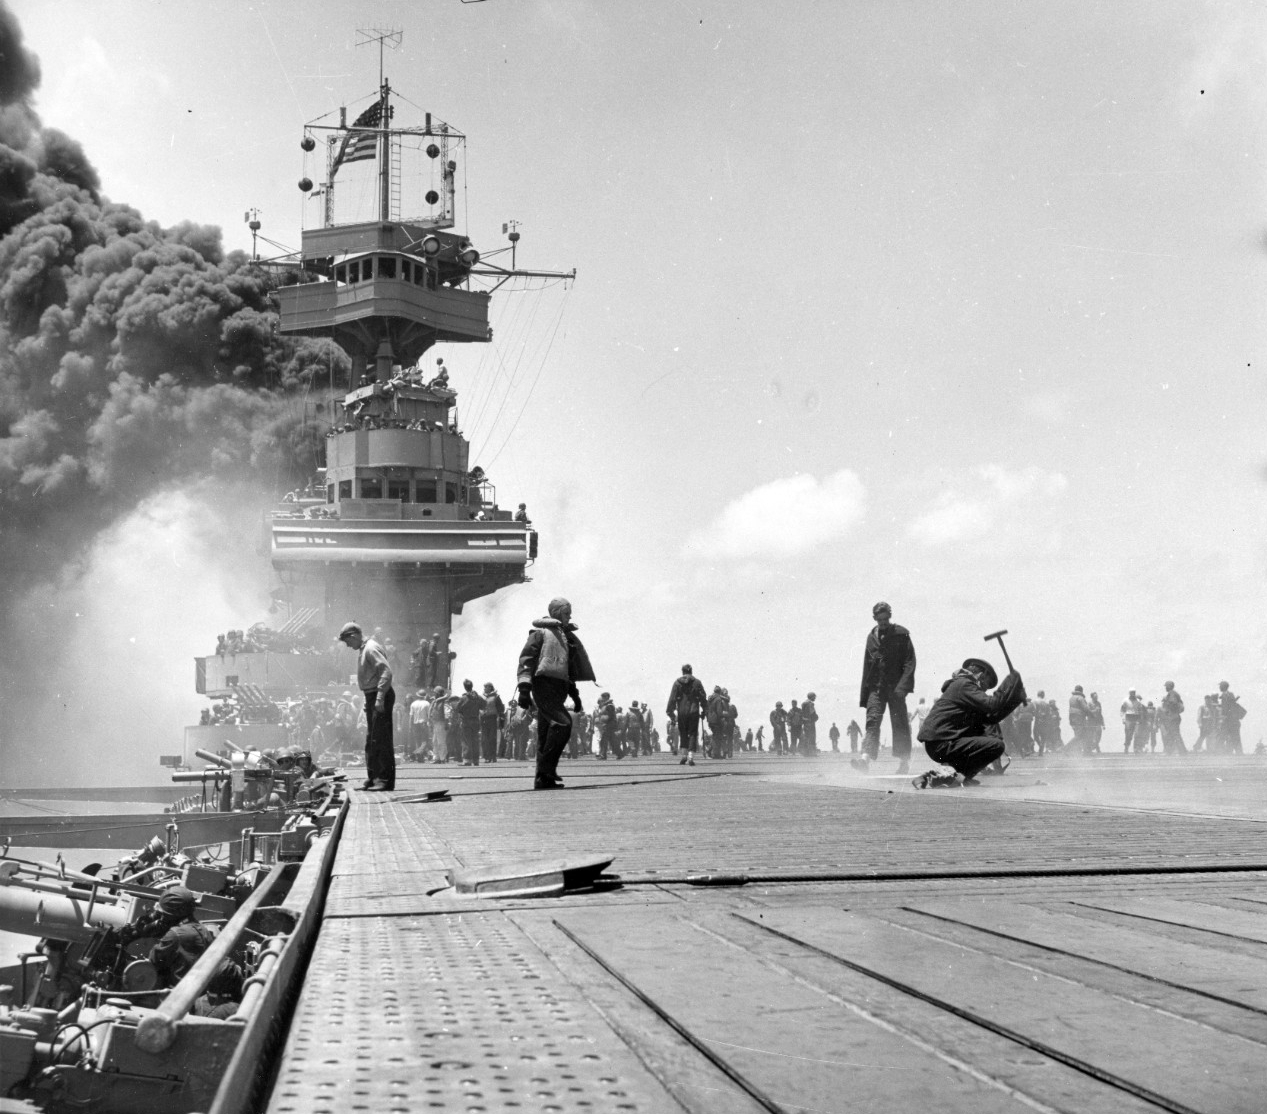 Photo #: 80-G-41686  Battle of Midway, June 1942